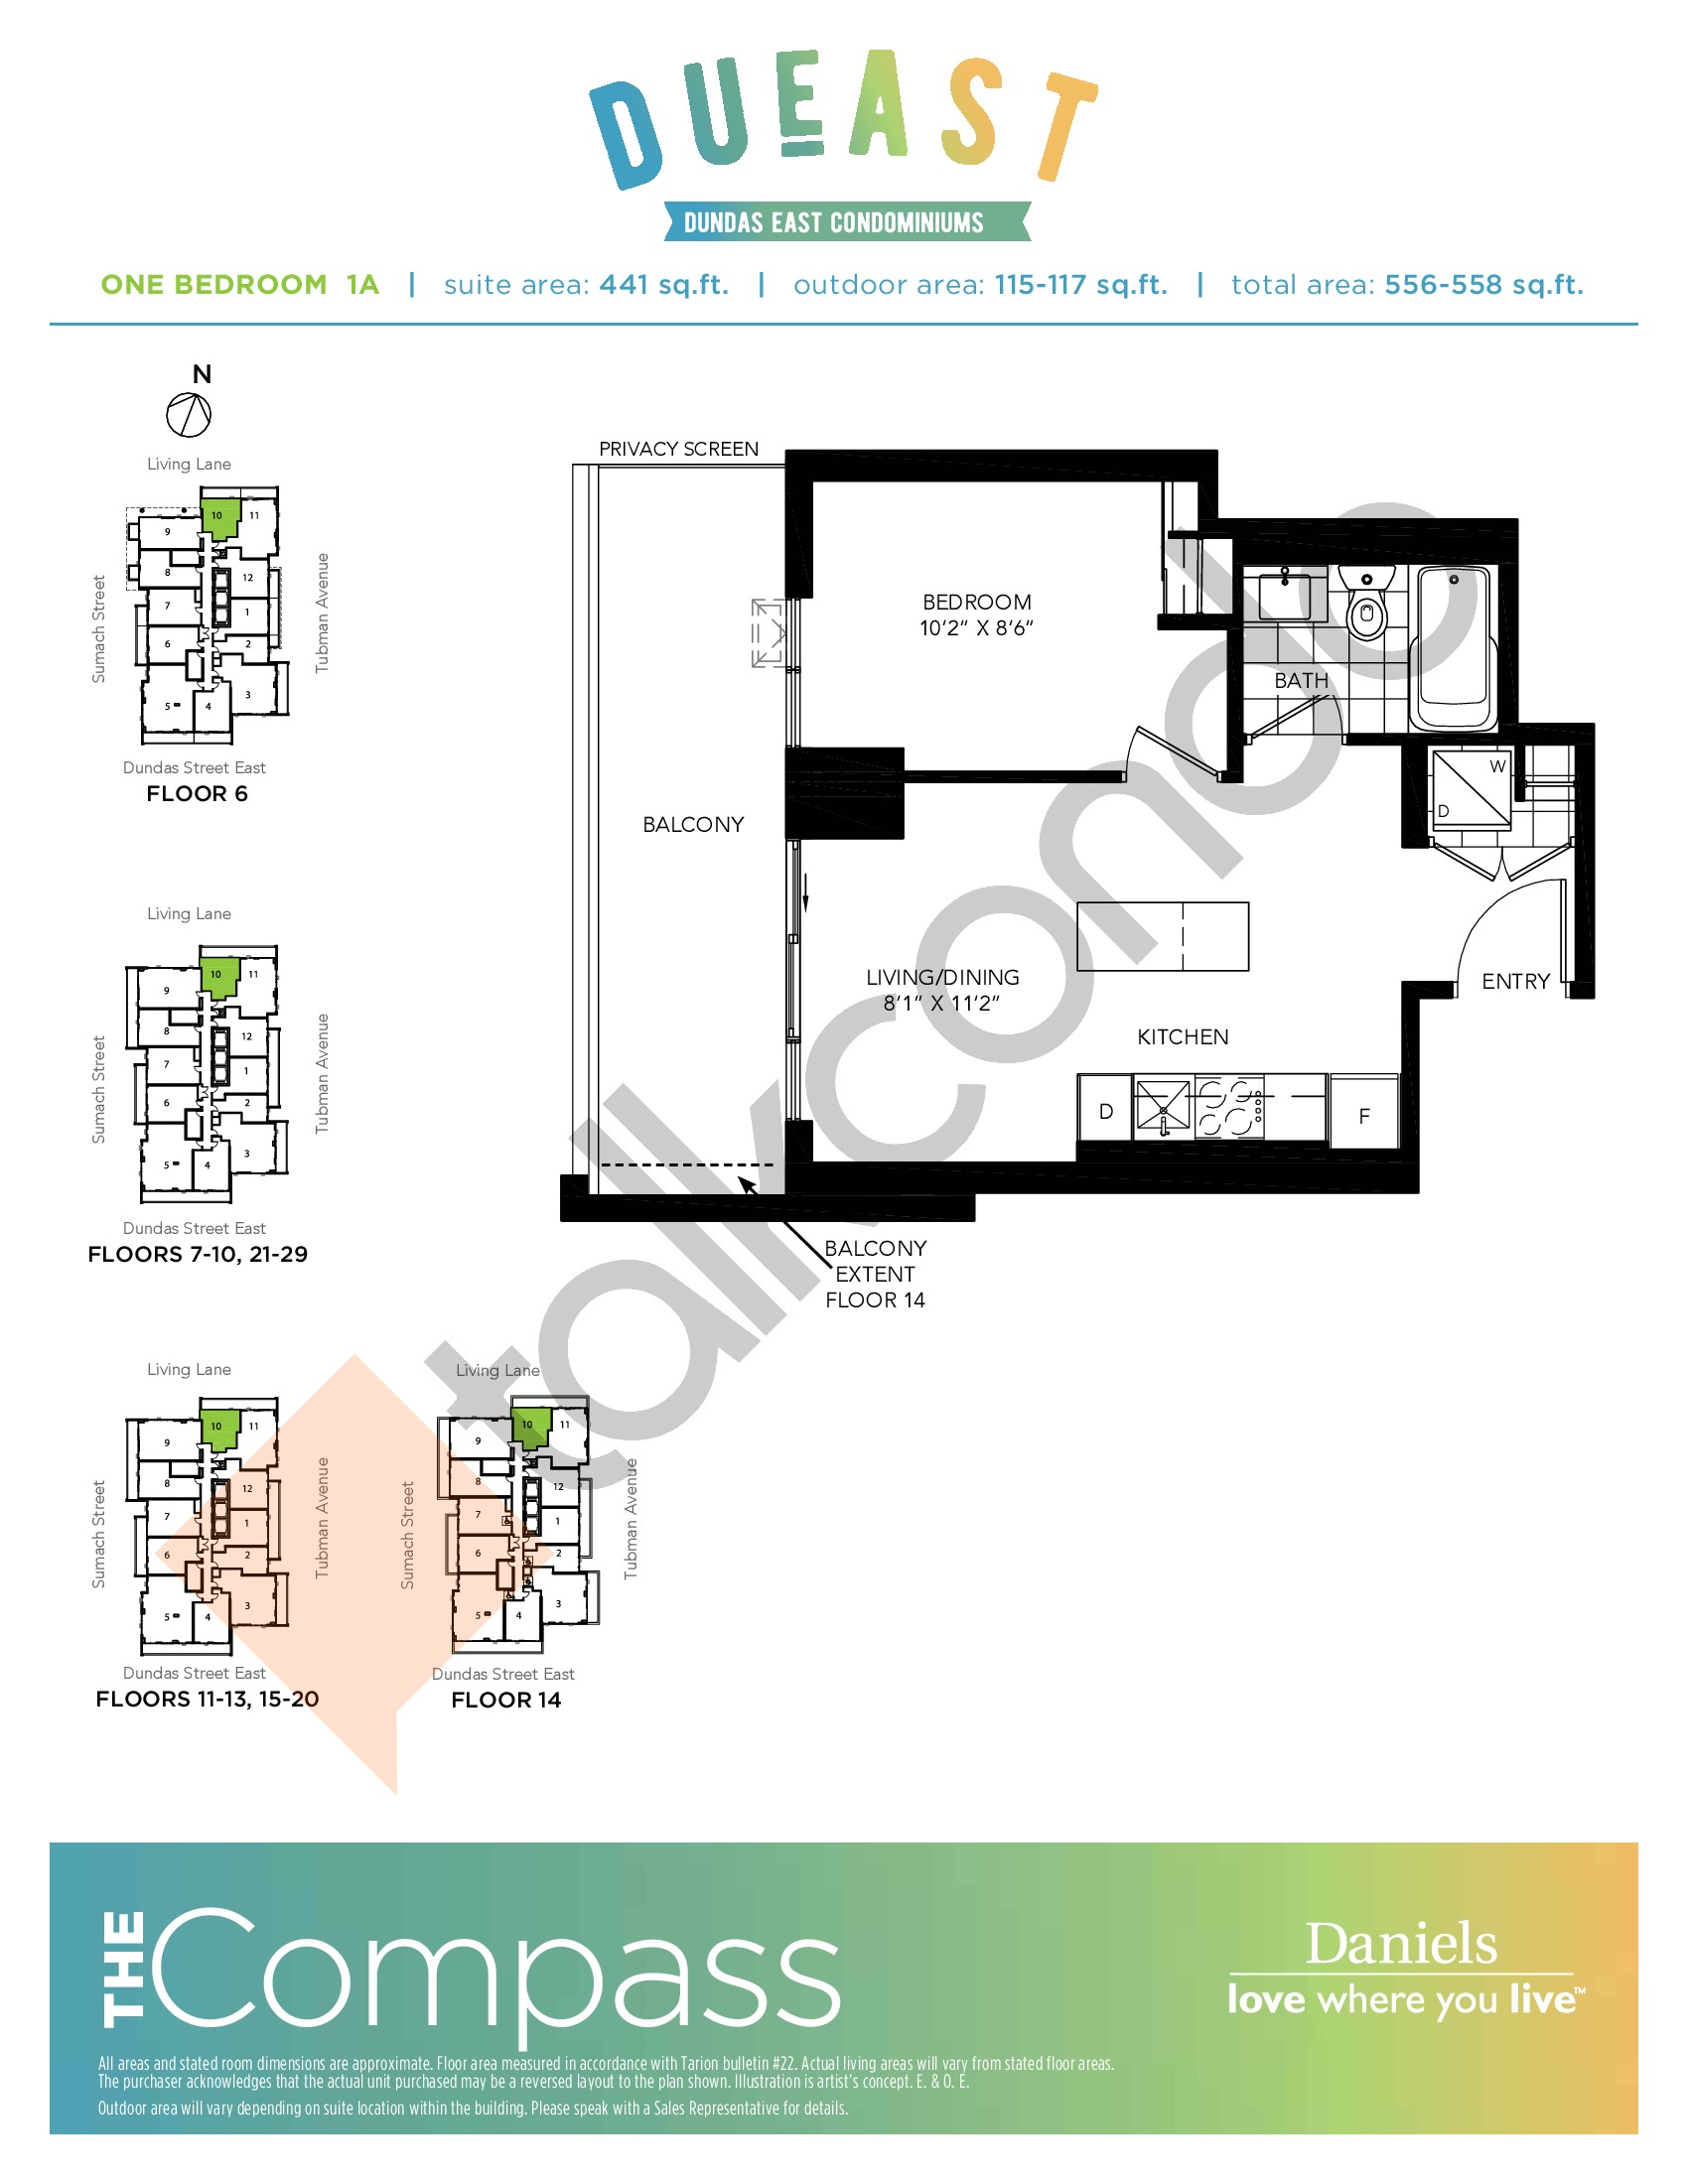 The Compass (1A) Floor Plan at DuEast Condos - 441 sq.ft